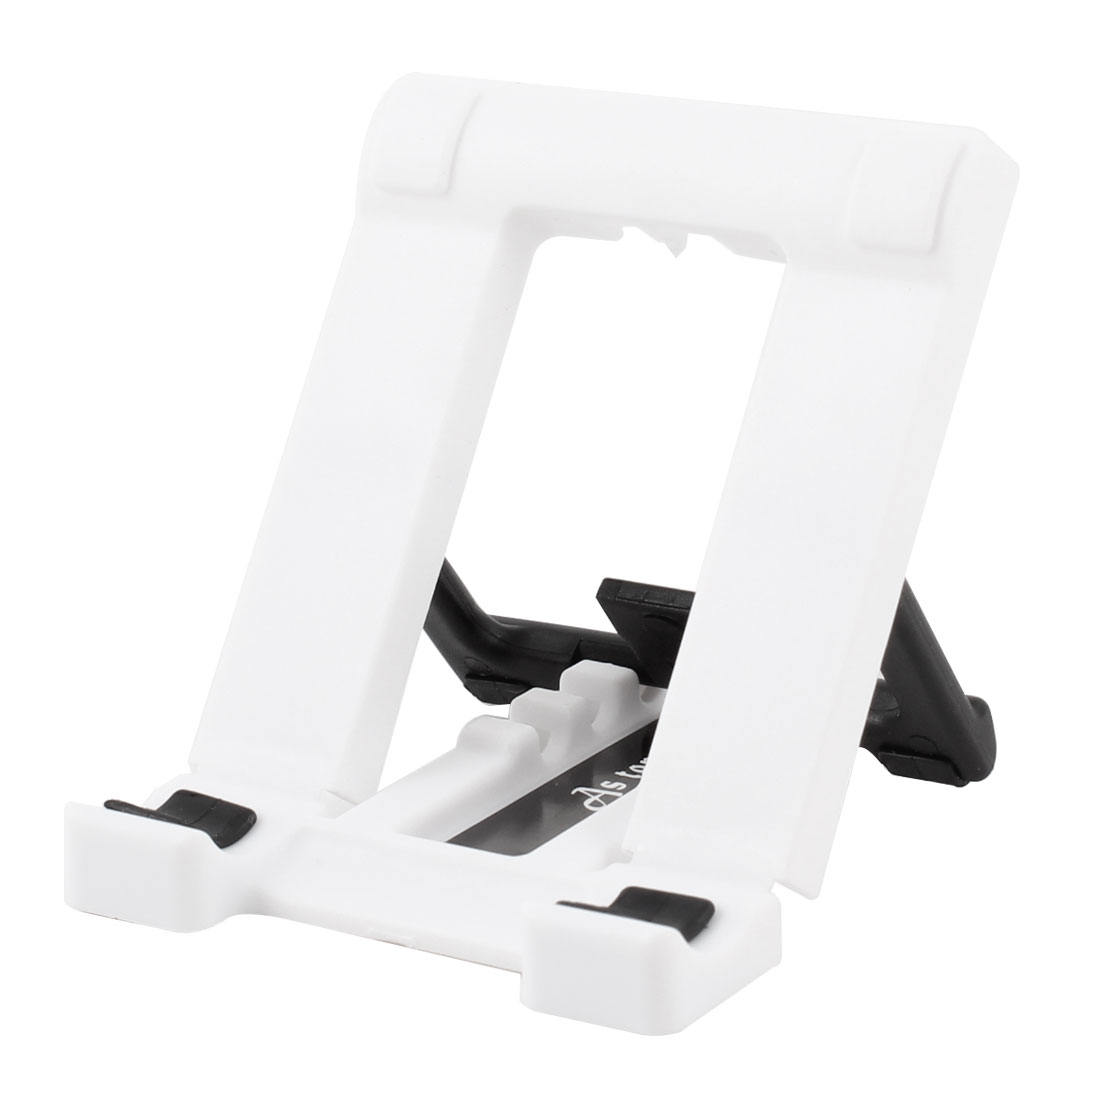 Universal Adjustable Stand Phone Holder Black White for Mp4 Mobile Phone